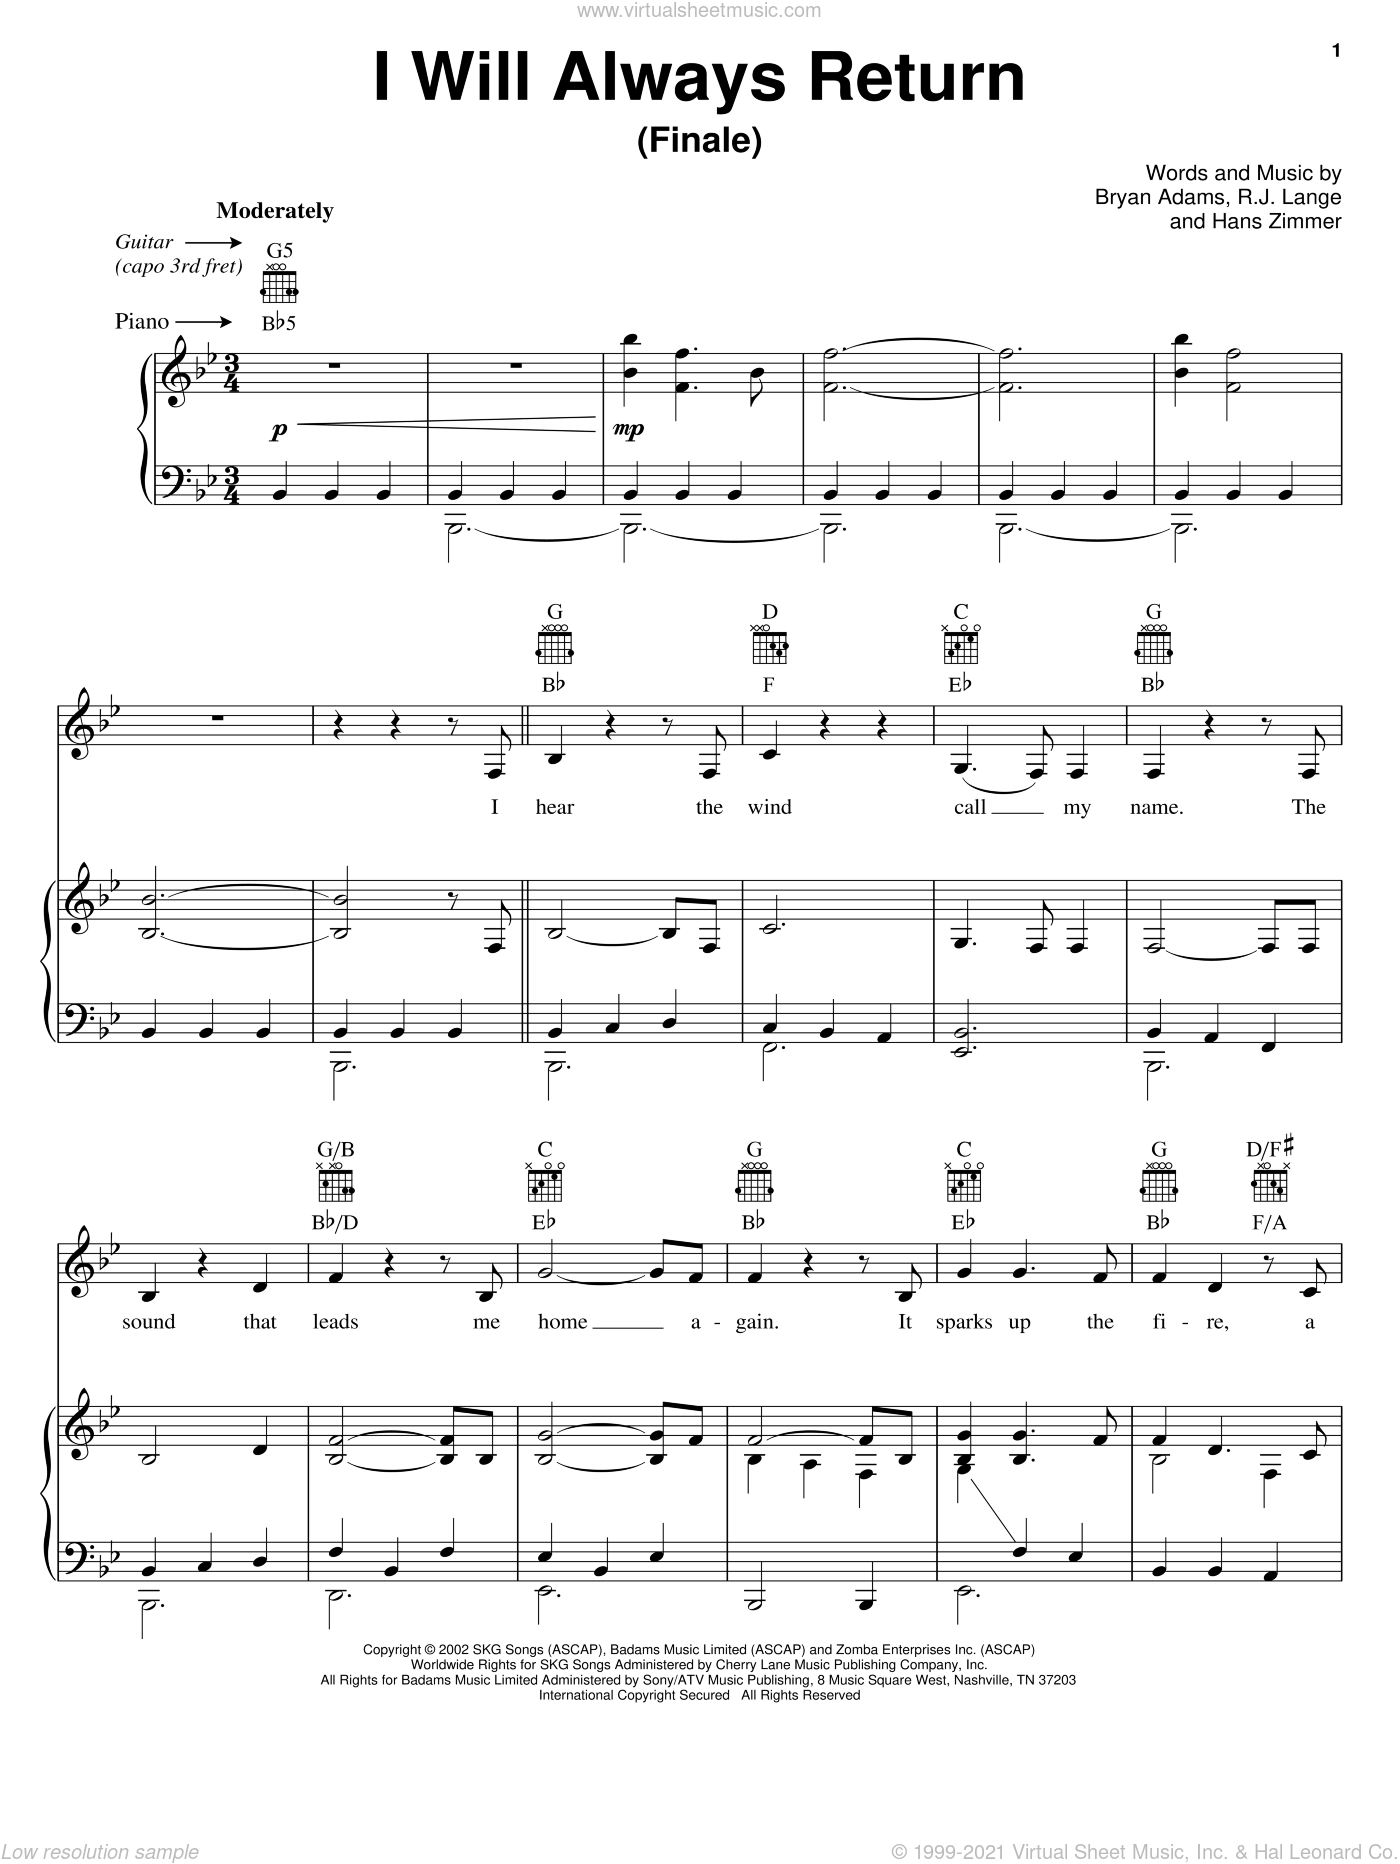 I Will Always Return (Finale) sheet music for voice, piano or guitar by Robert John Lange, Bryan Adams and Hans Zimmer. Score Image Preview.